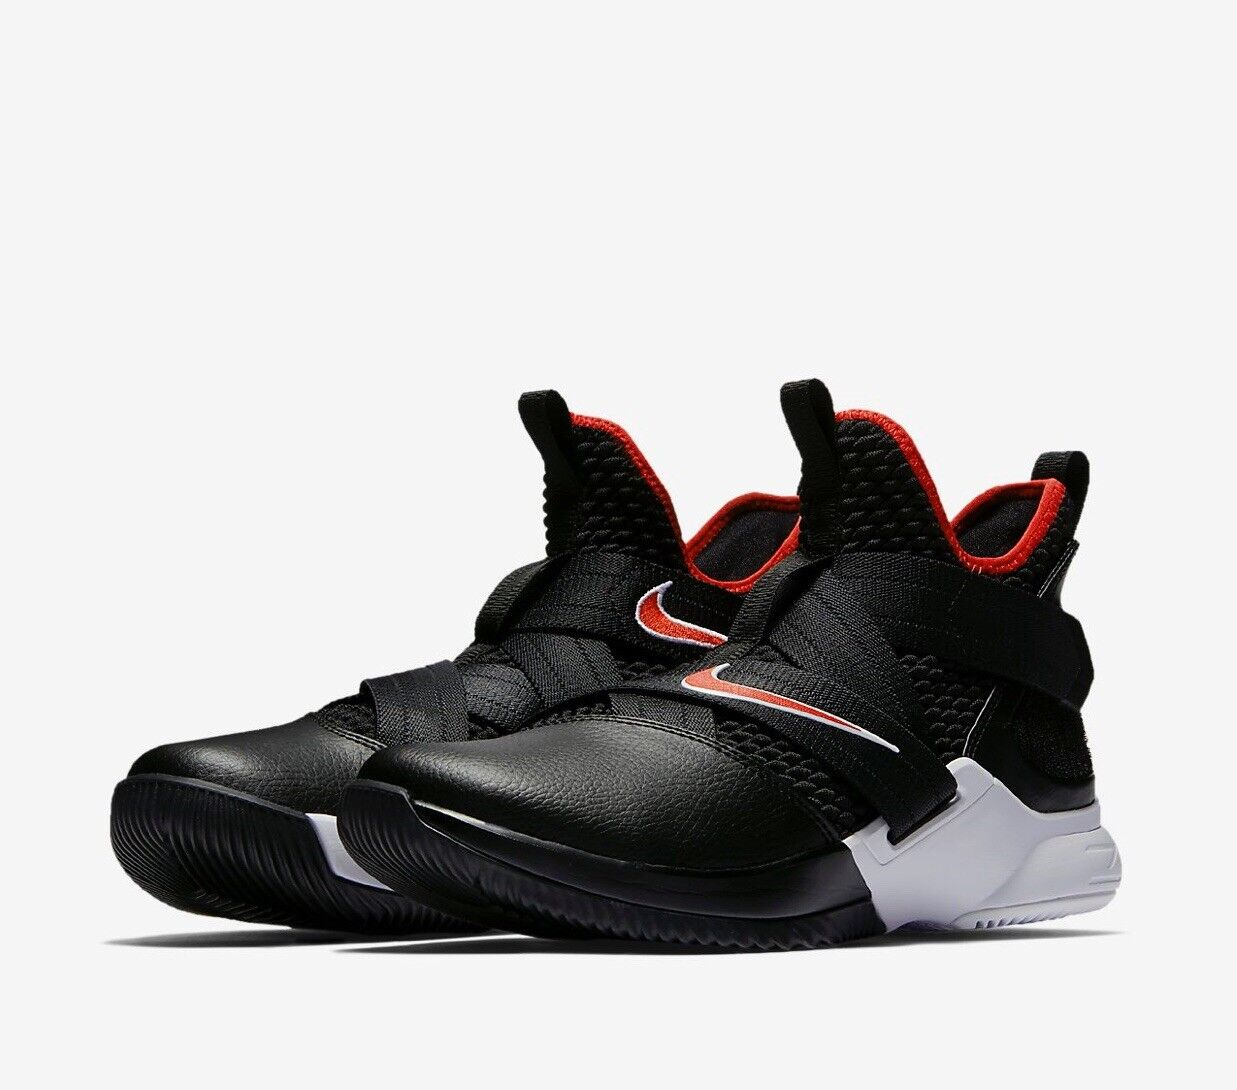 Nike Lebron James Soldier XII 12 Bred Black White and University Red AO2609-001 Special limited time